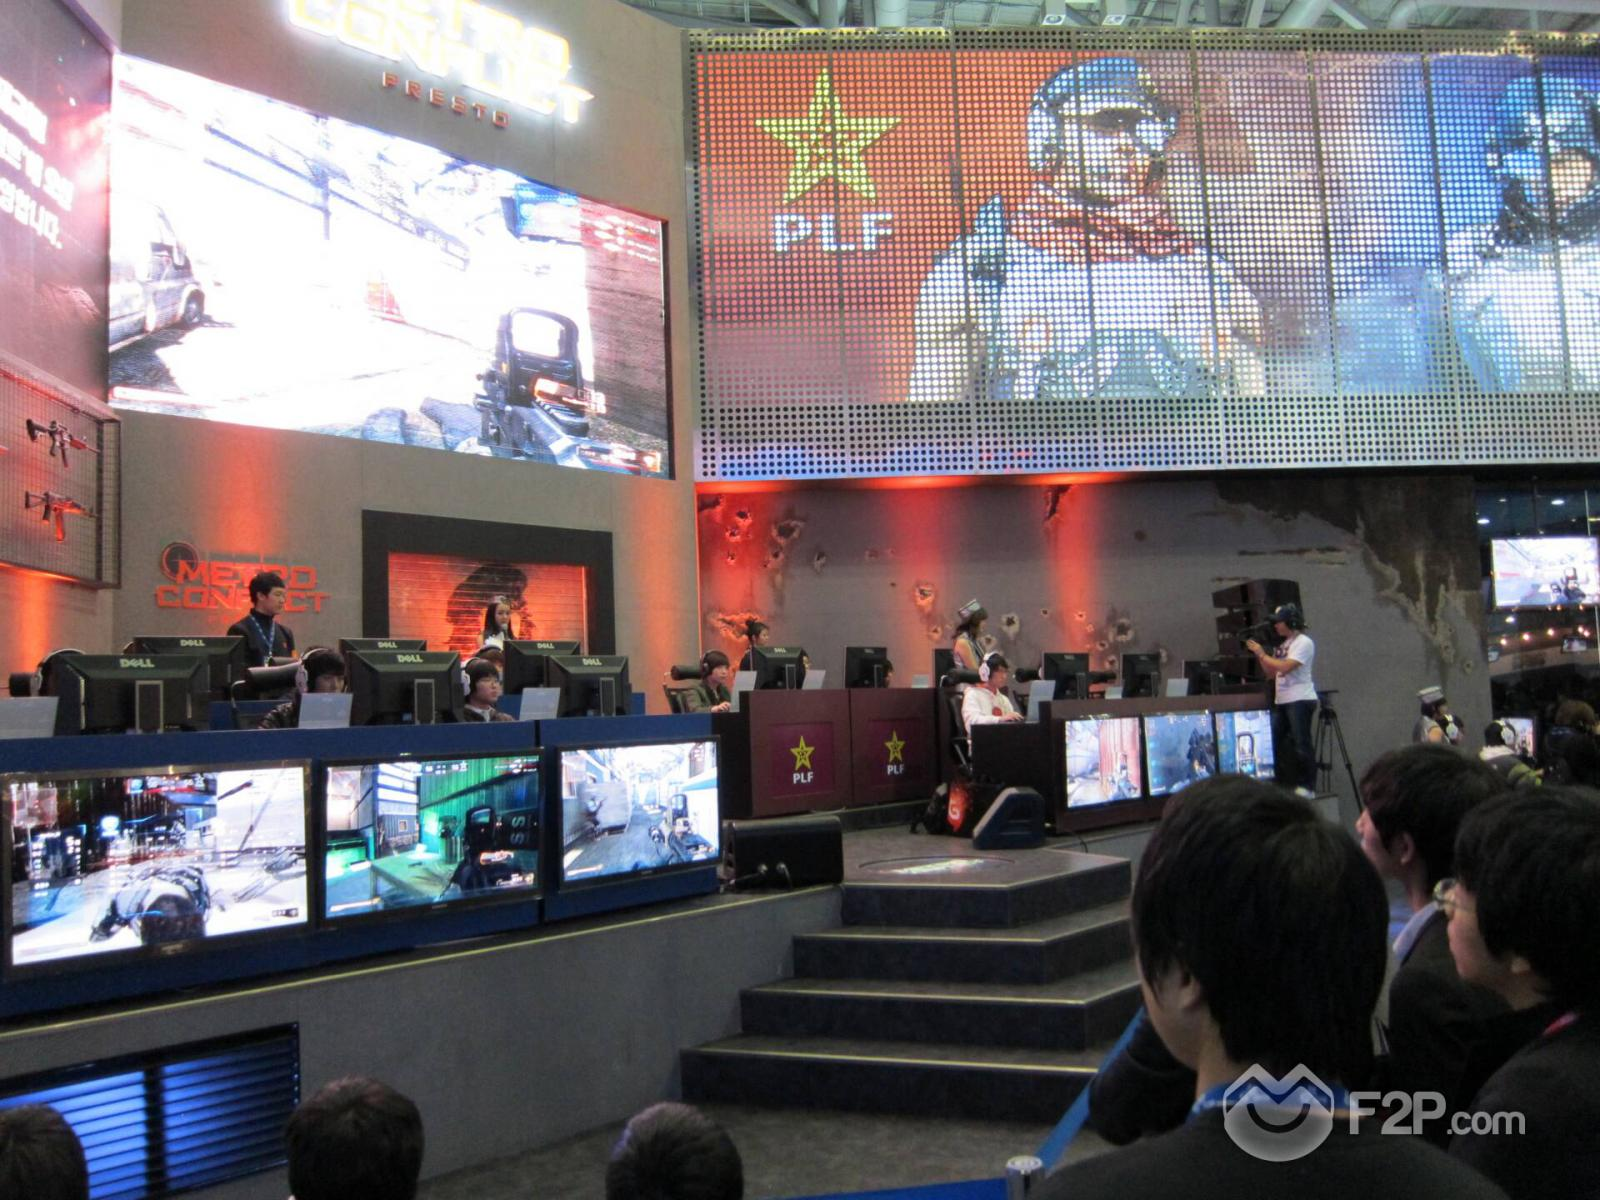 Click image for larger version.Name:G-Star 2010 F2P second day 15.jpgViews:51Size:271.4 KBID:2087